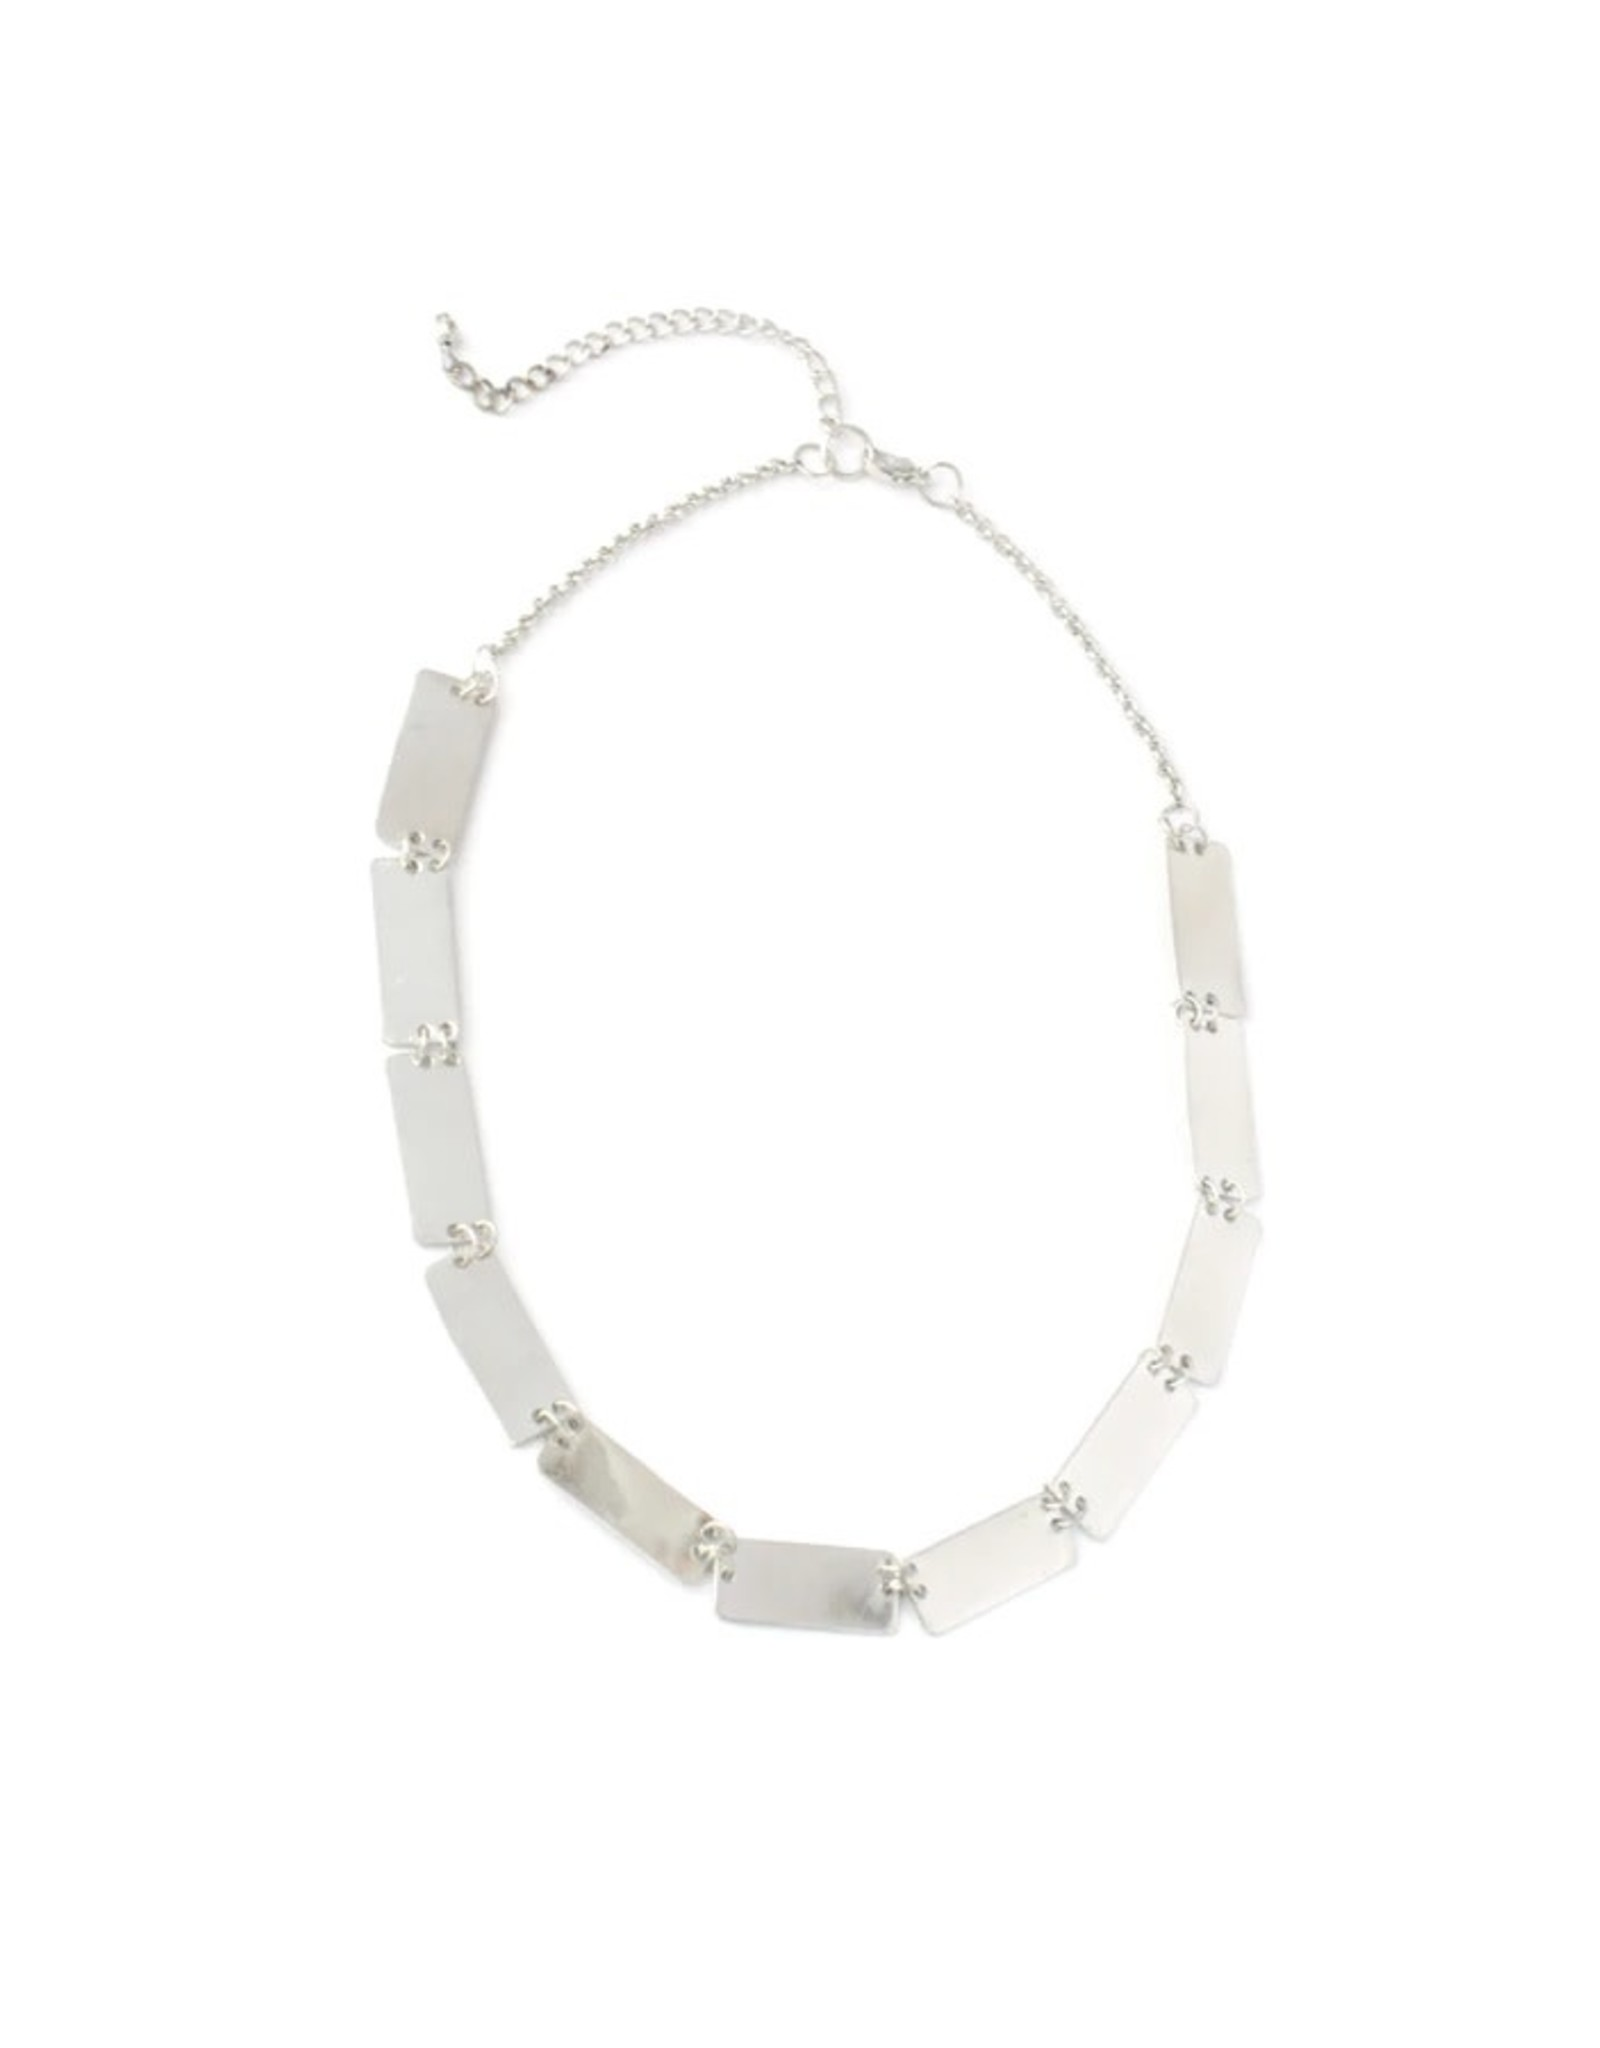 Fair Anita CLEARANCE Pretty Pathways Necklace, Silver. India